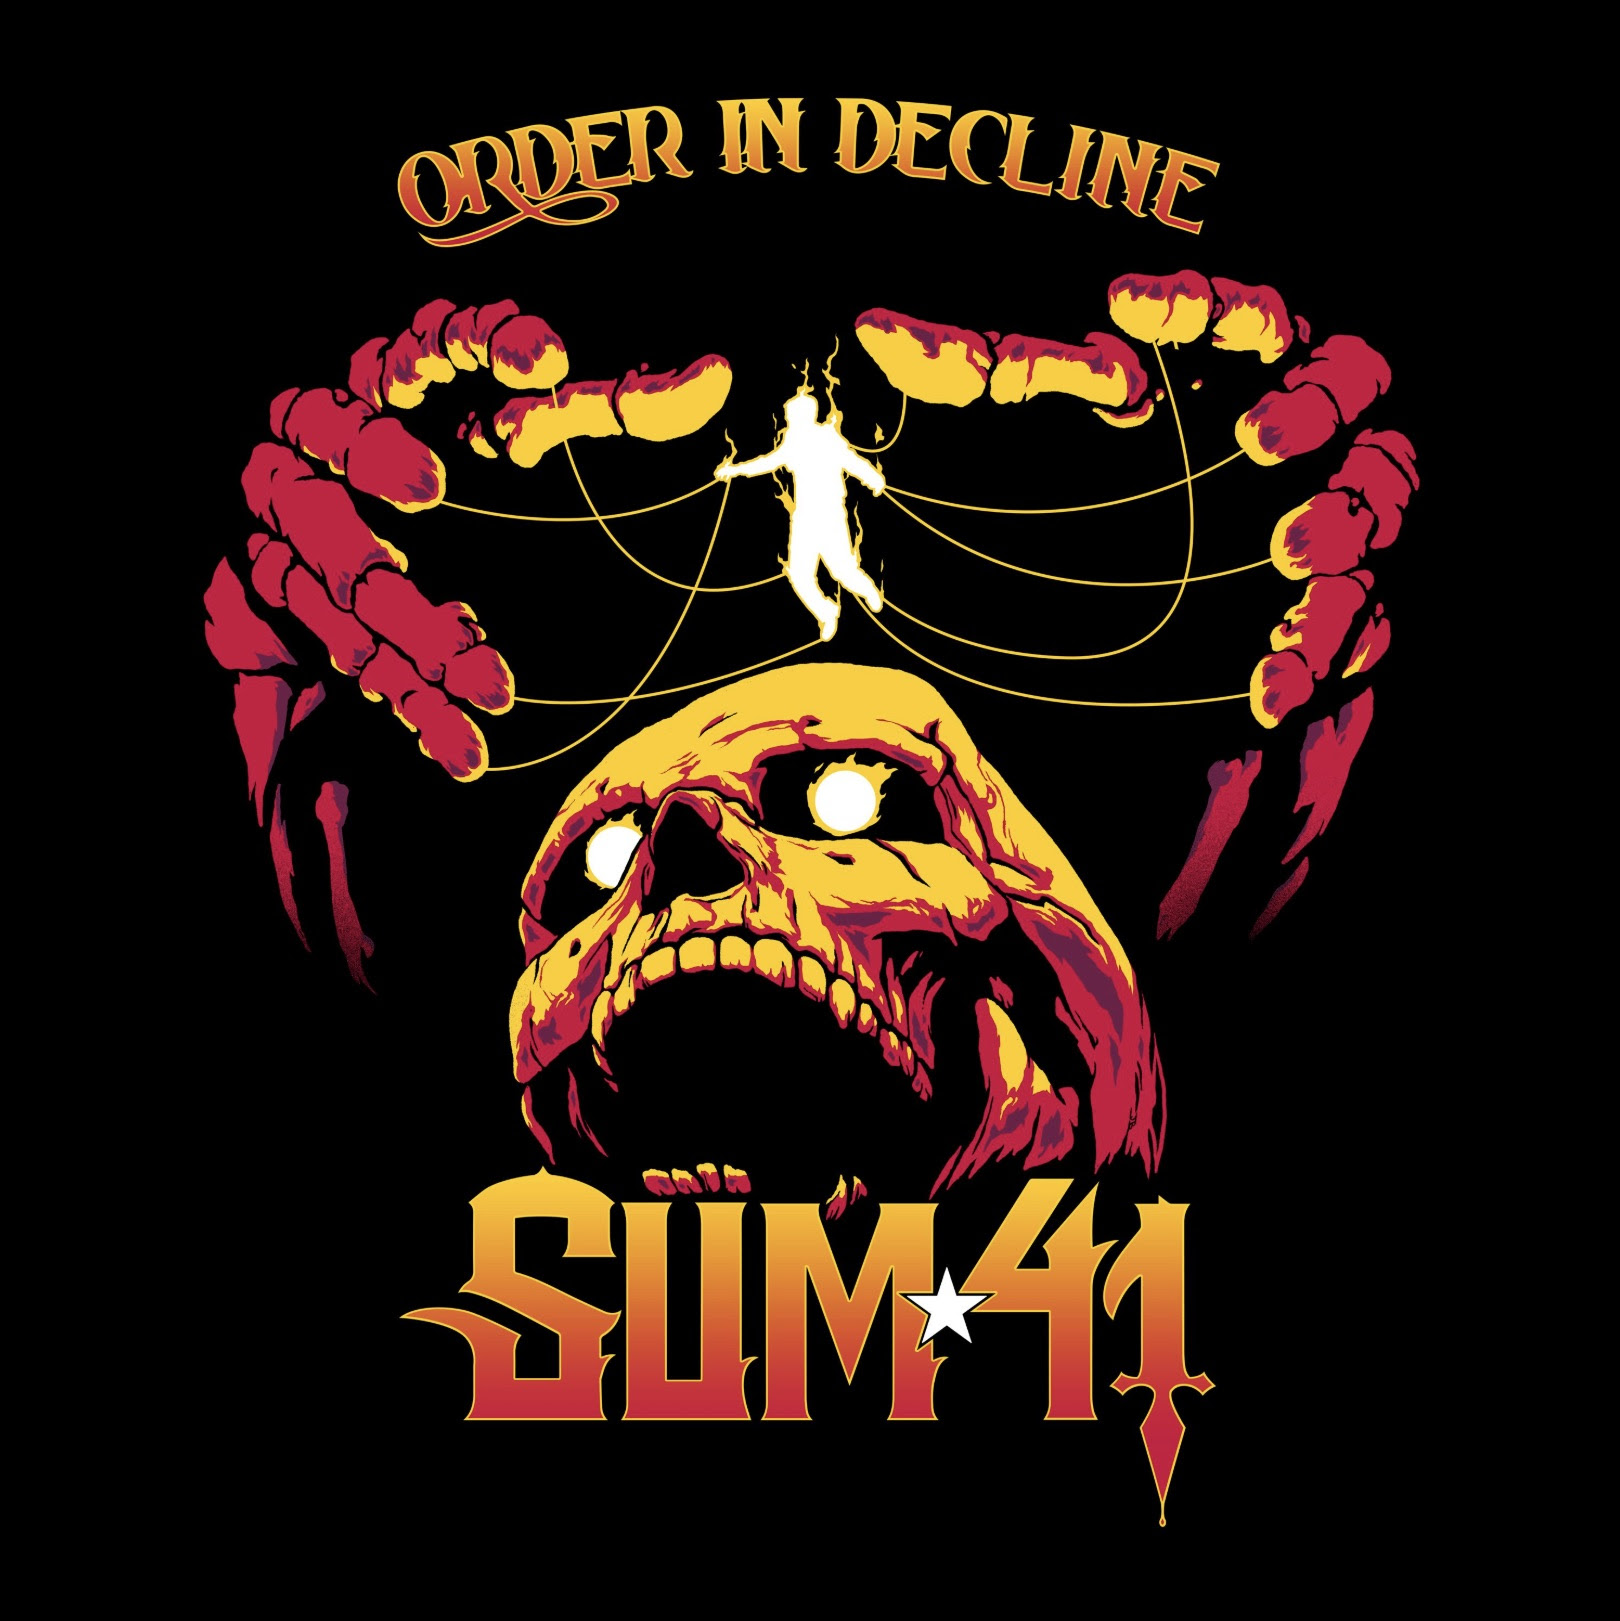 Sum 41 - Order in Decline  Release Date: 7/19/19 Devices Used:  Hoof Reaper  /  Palisades  /  Afterneath  /  Disaster Transport SR